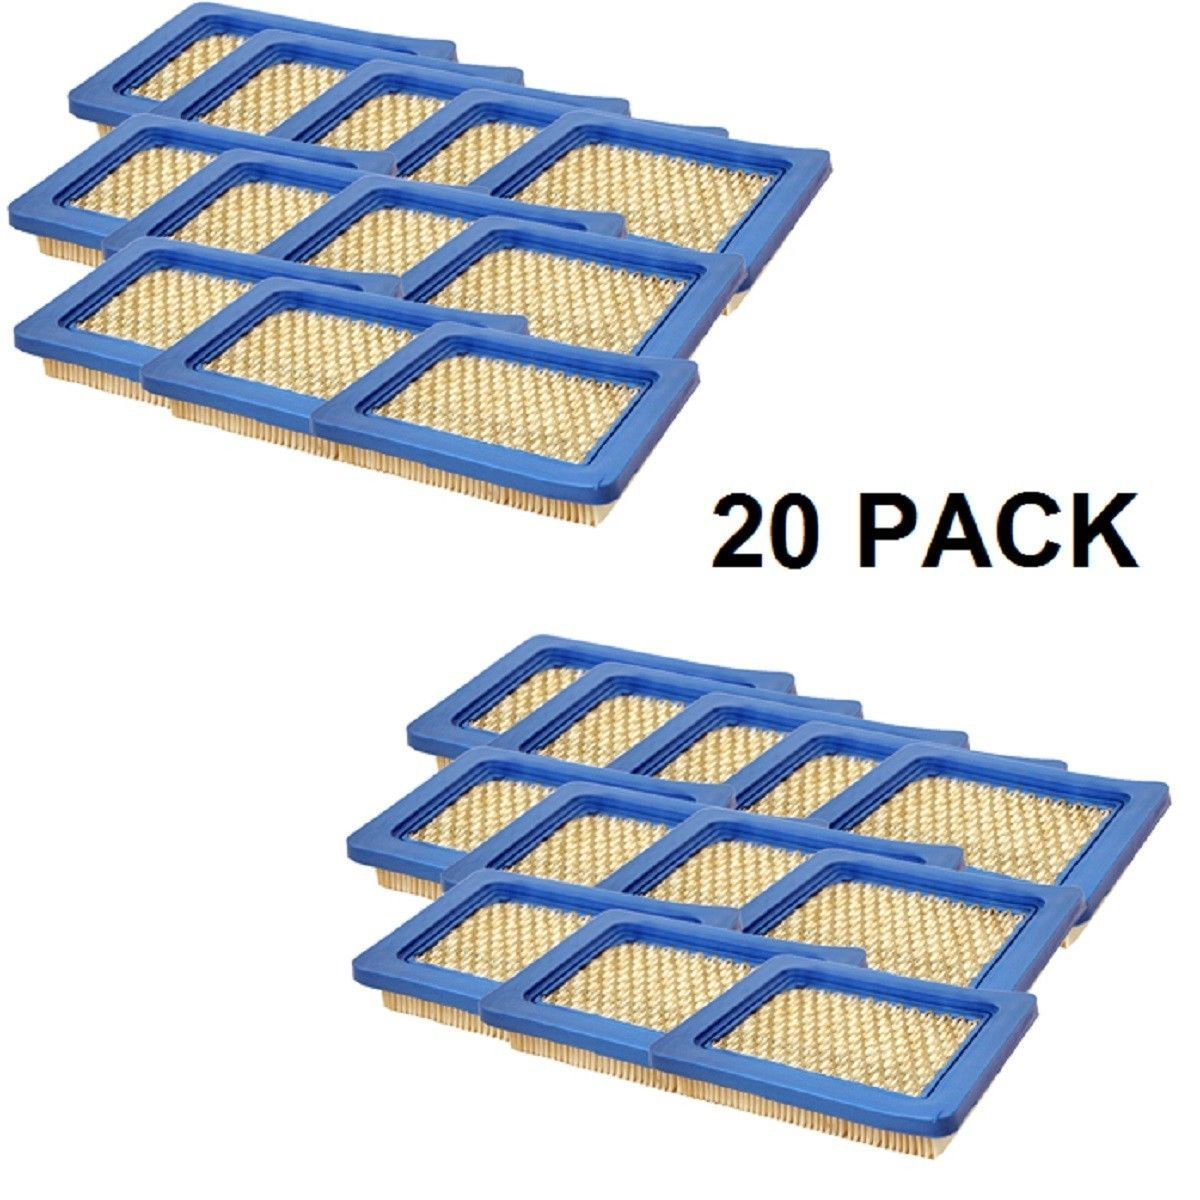 20 Pack of Air Filters fit 30-710, 12941, 20 491588S, LG491588, LG491588S